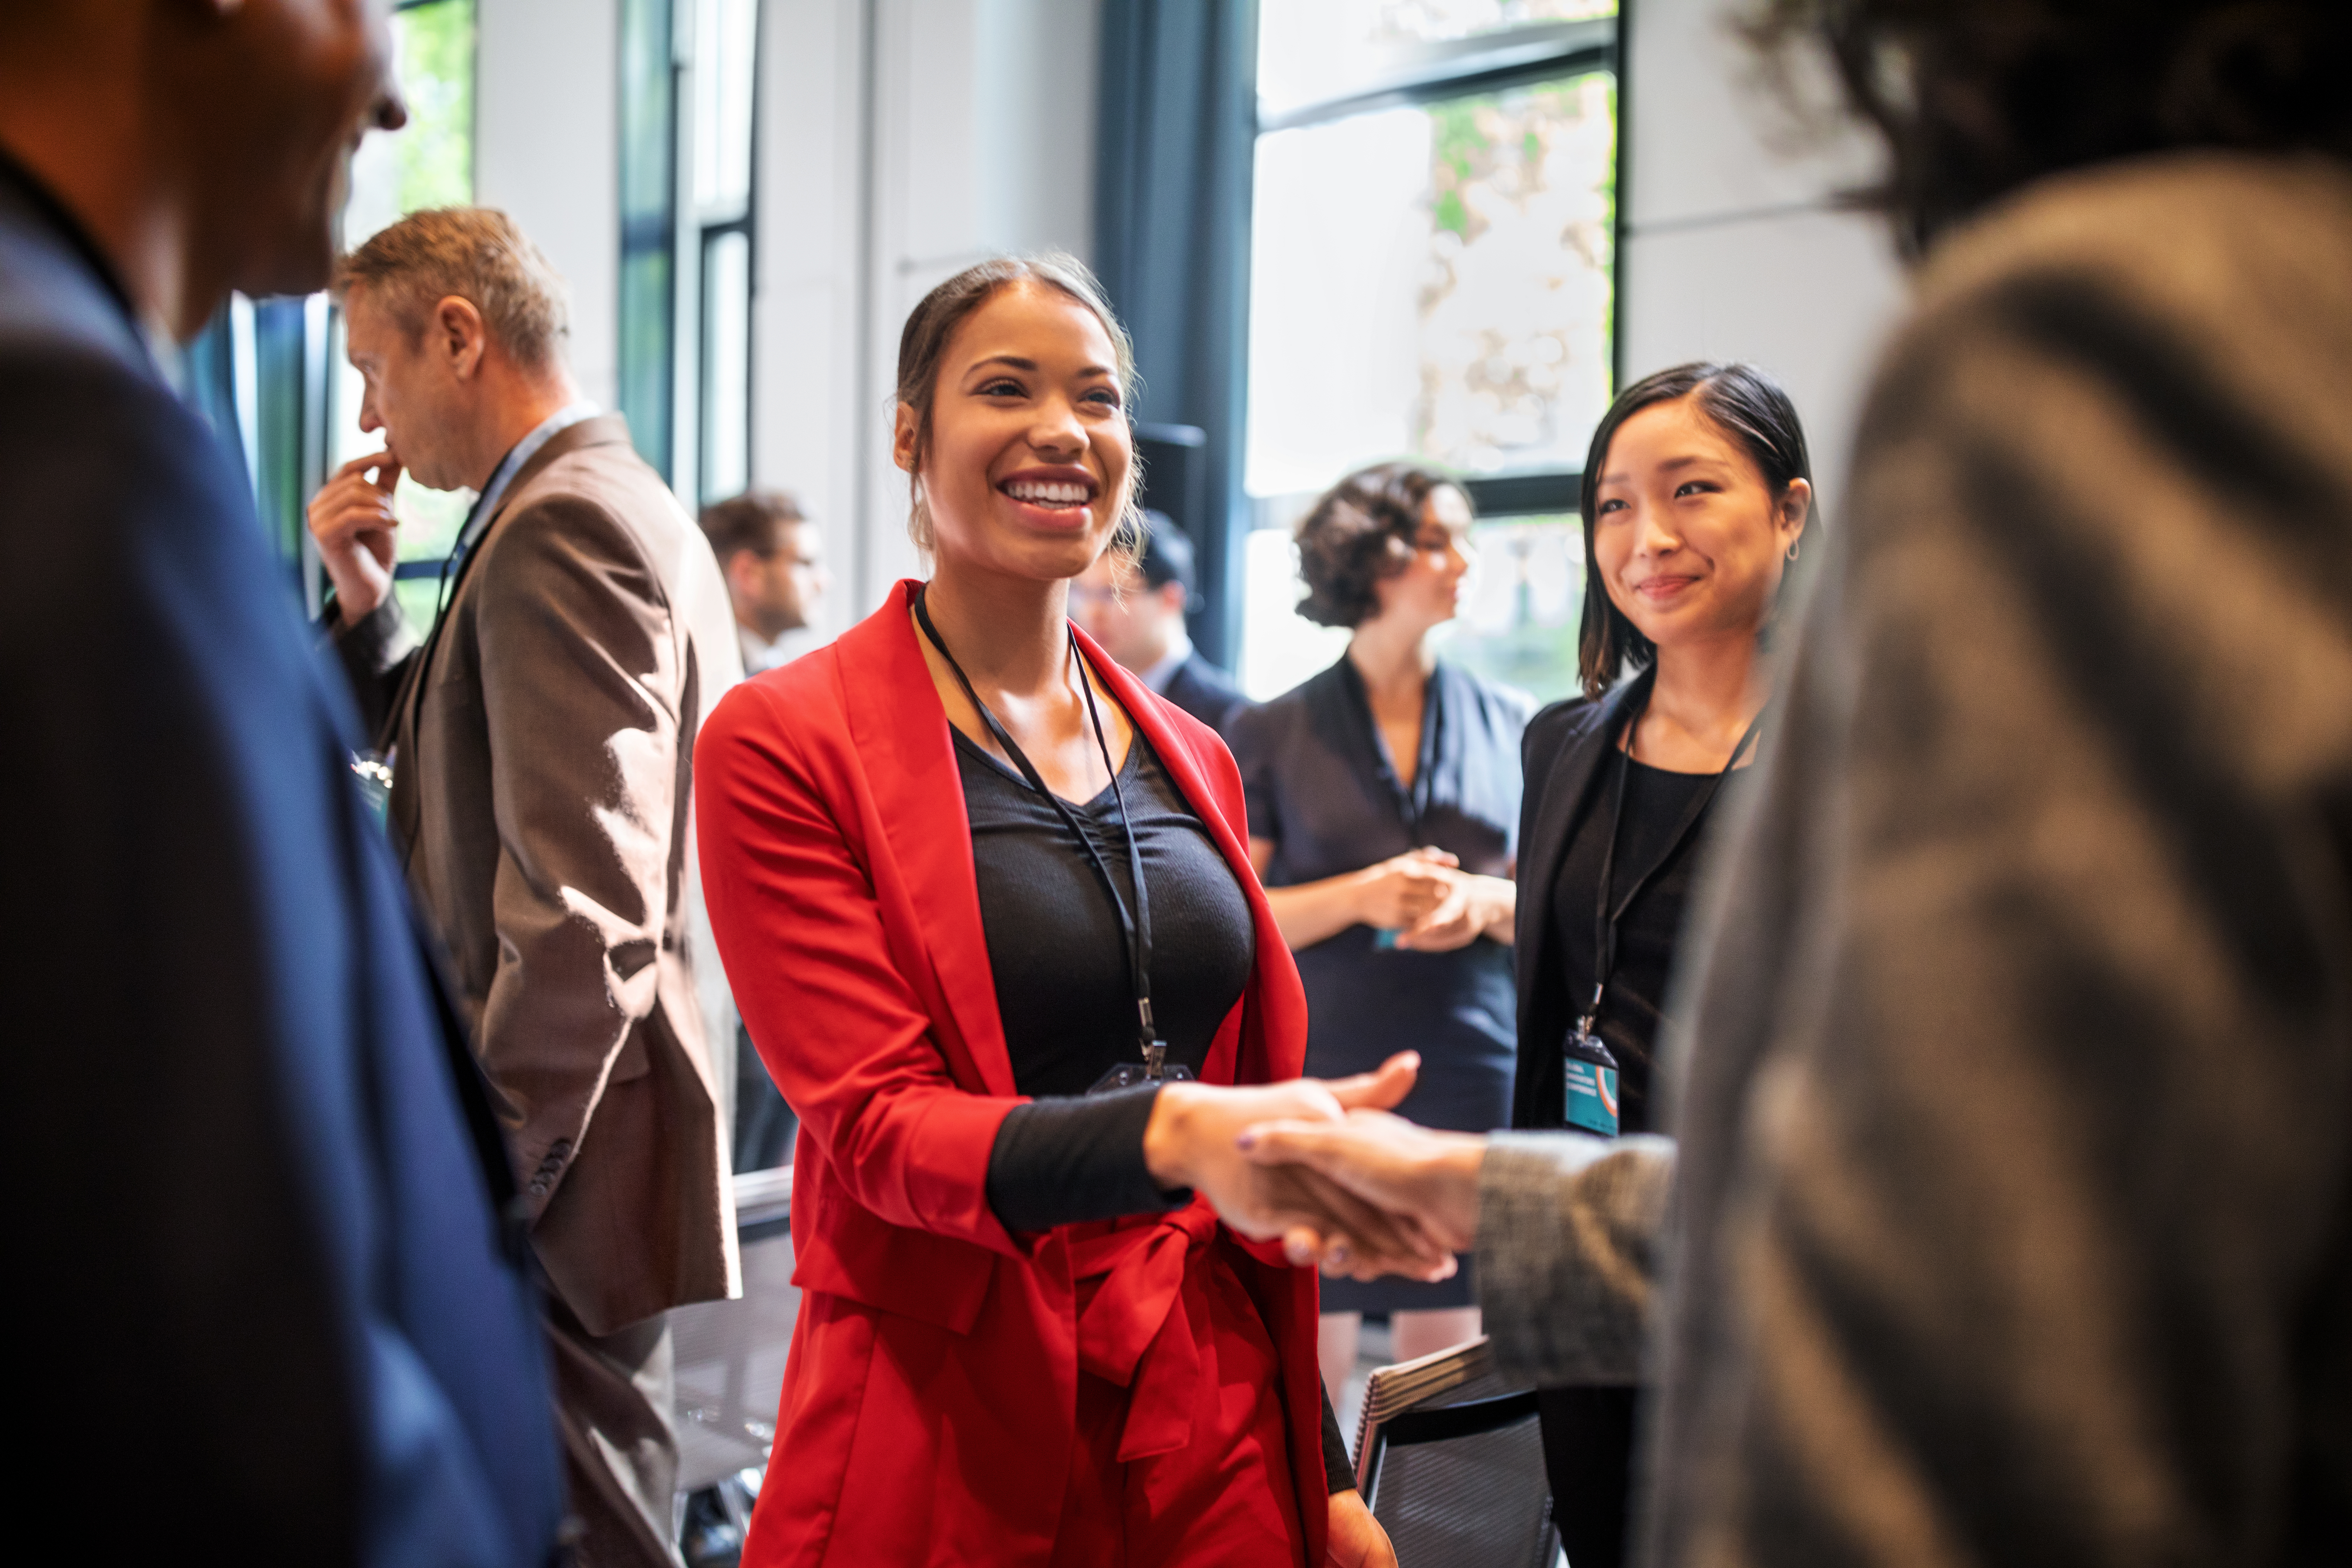 Confident businesswomen handshaking while standing in corridor of an auditorium. Female professionals greeting each other convention center.